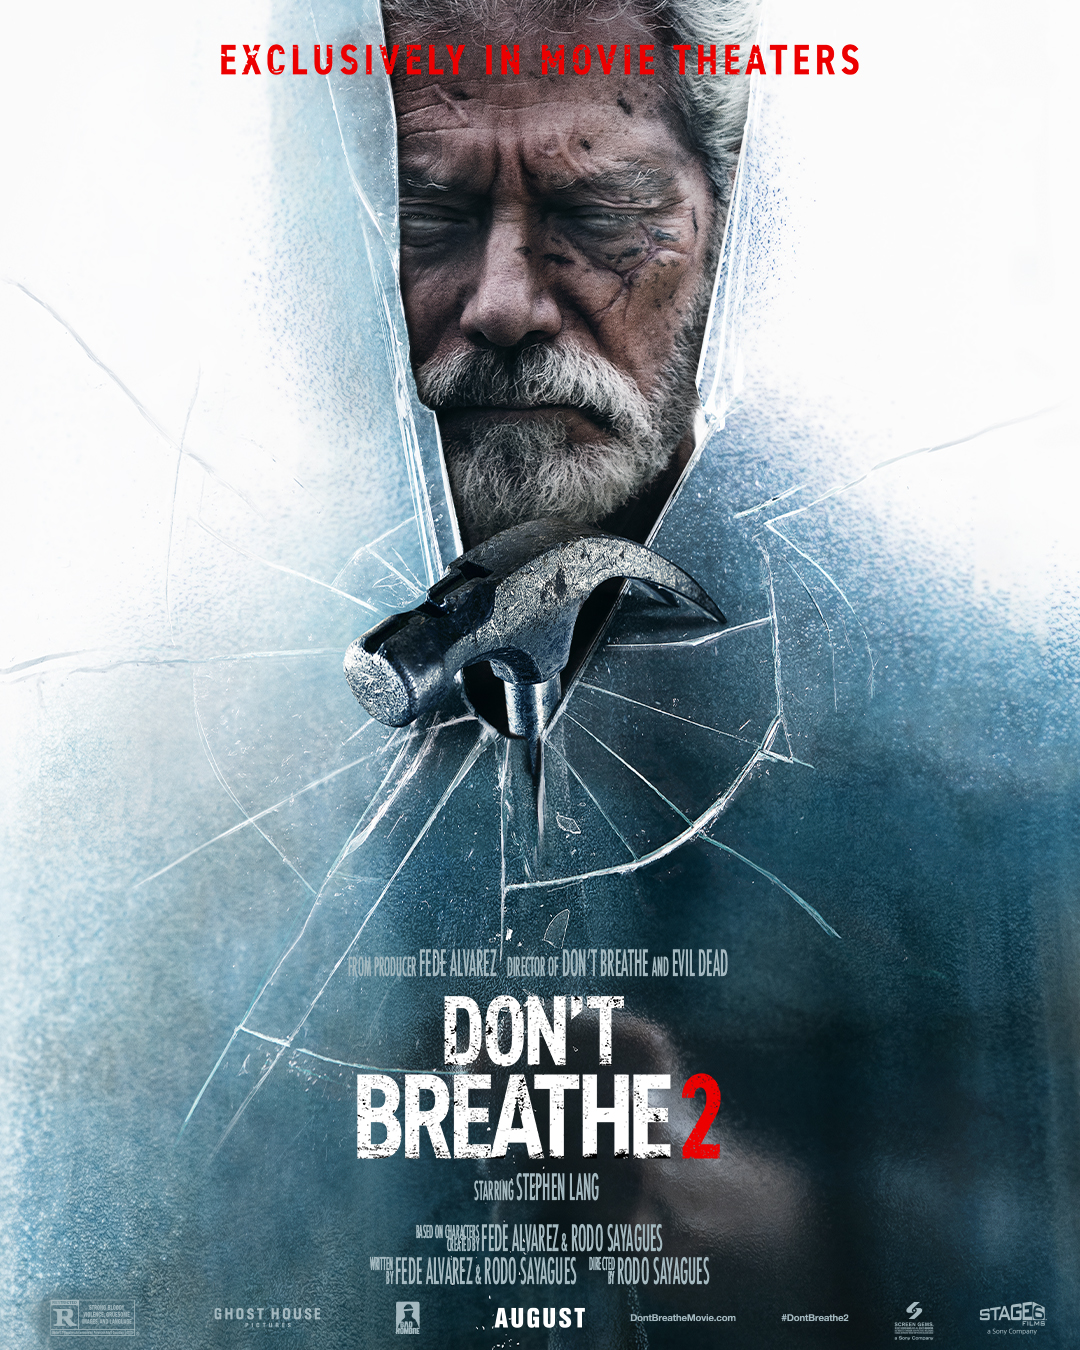 Movie poster image for DON'T BREATHE 2